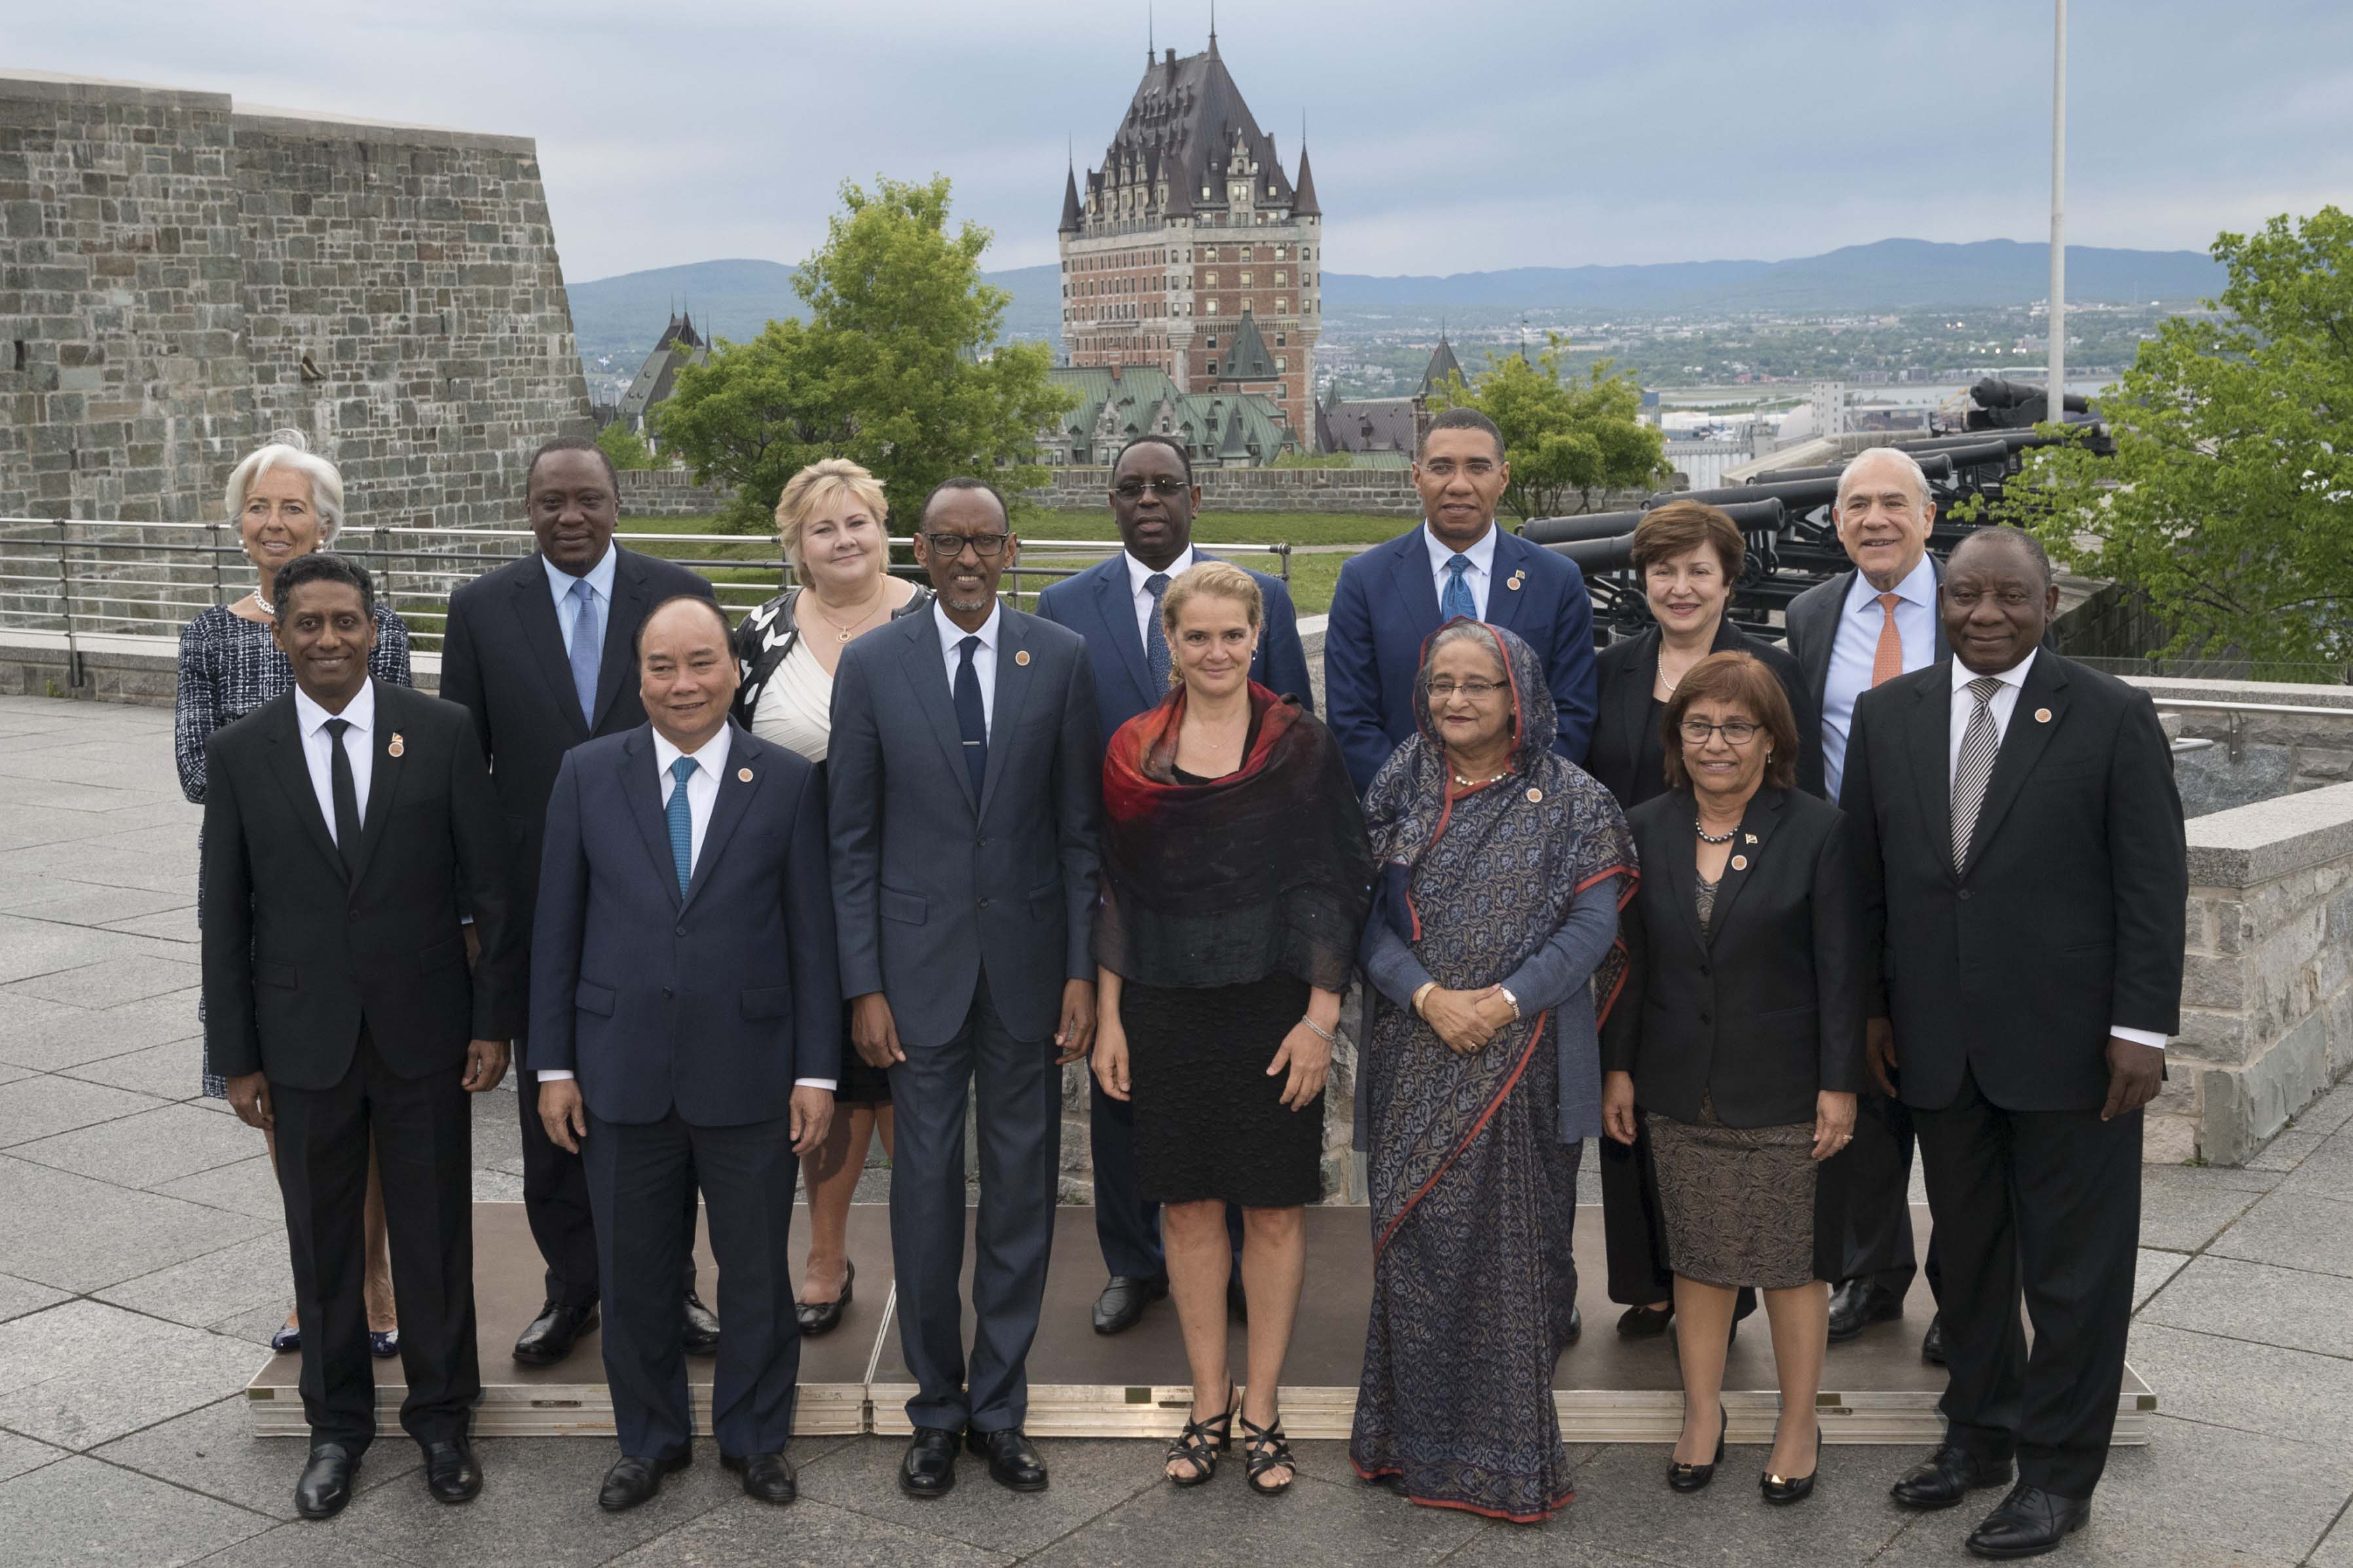 The Governor General hosted a dinner in honour of the heads of State, heads of government and heads of international organizations participating in the outreach session of the Charlevoix G7 Summit. The event took place at the Residence of the Governor General at the Citadelle of Québec on June 8, 2018.